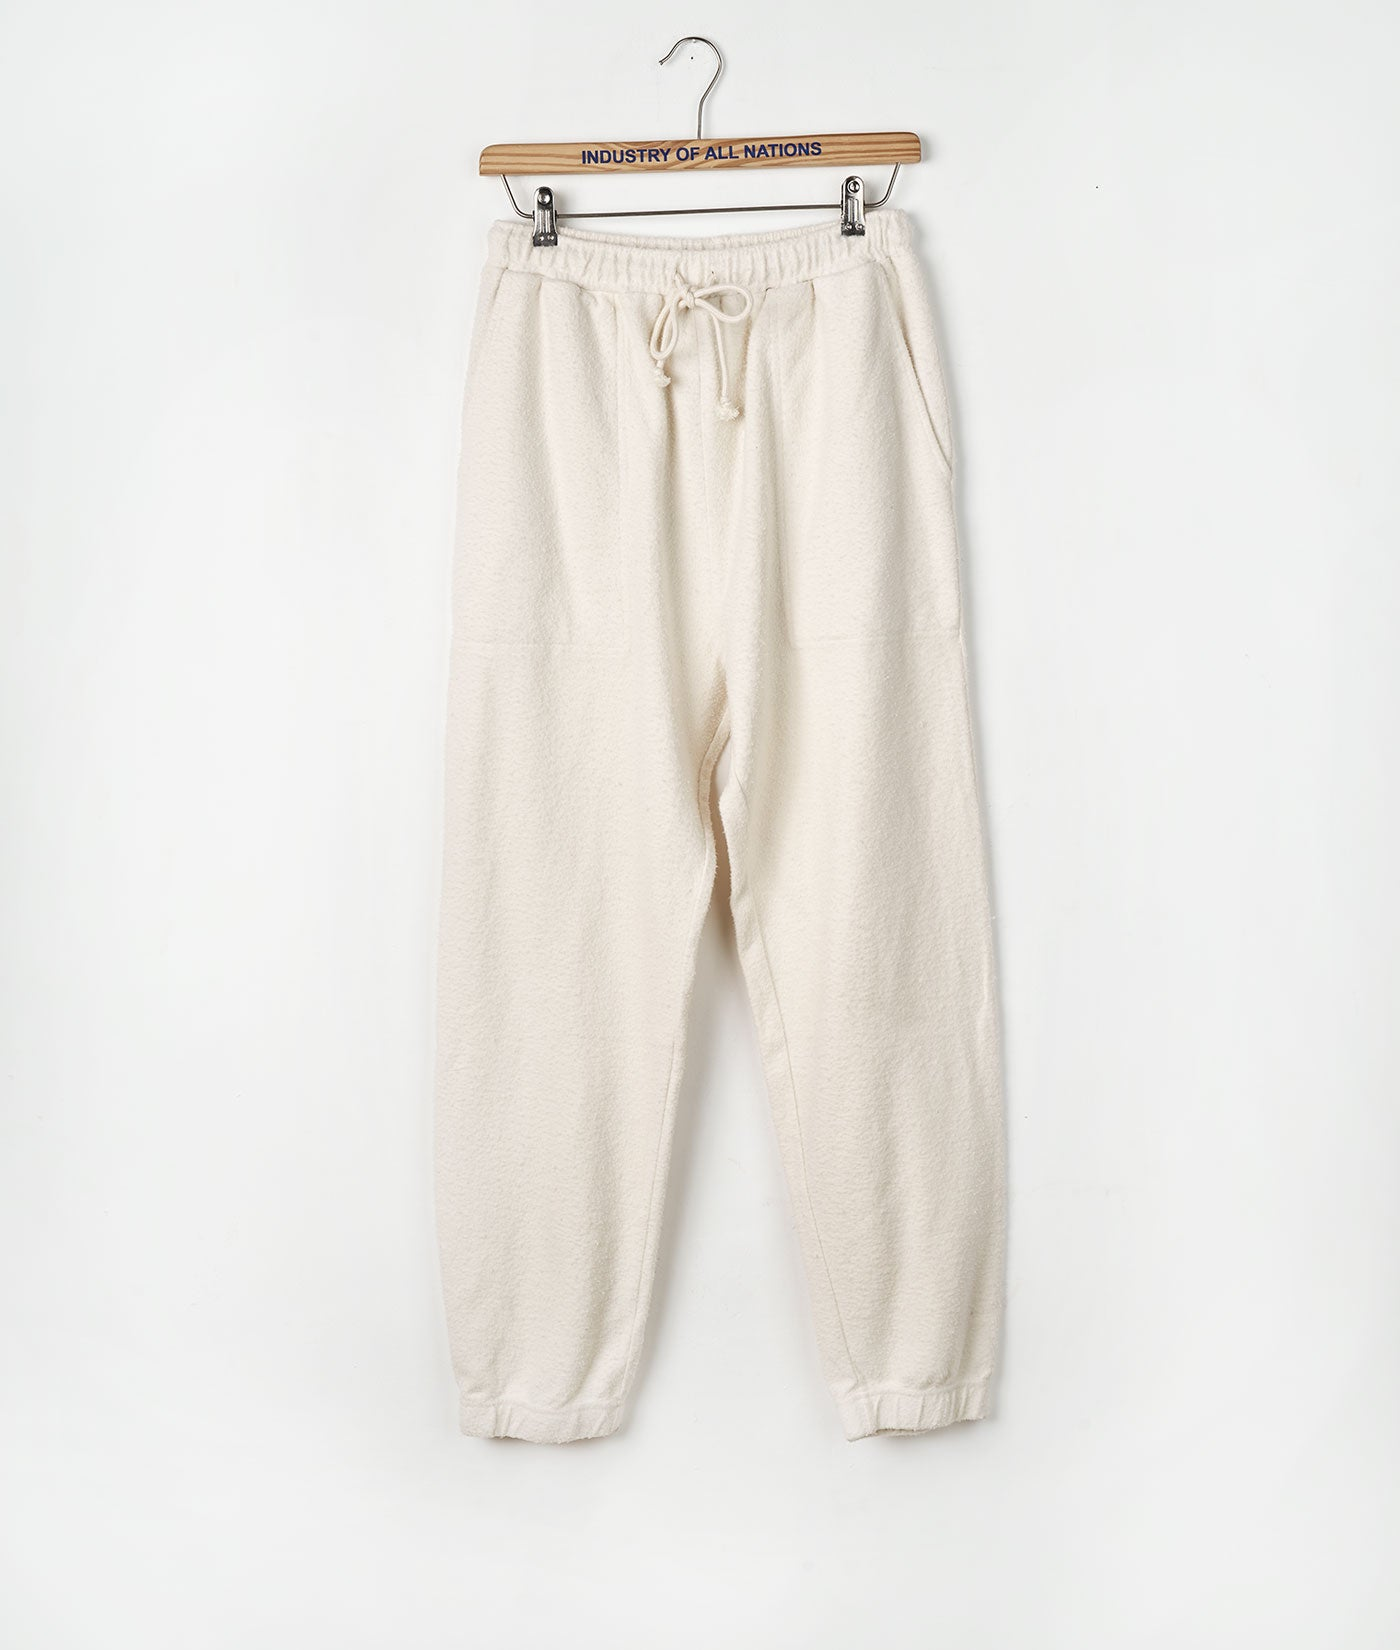 Industry of All Nations Organic Cotton Fleece Sweatpants